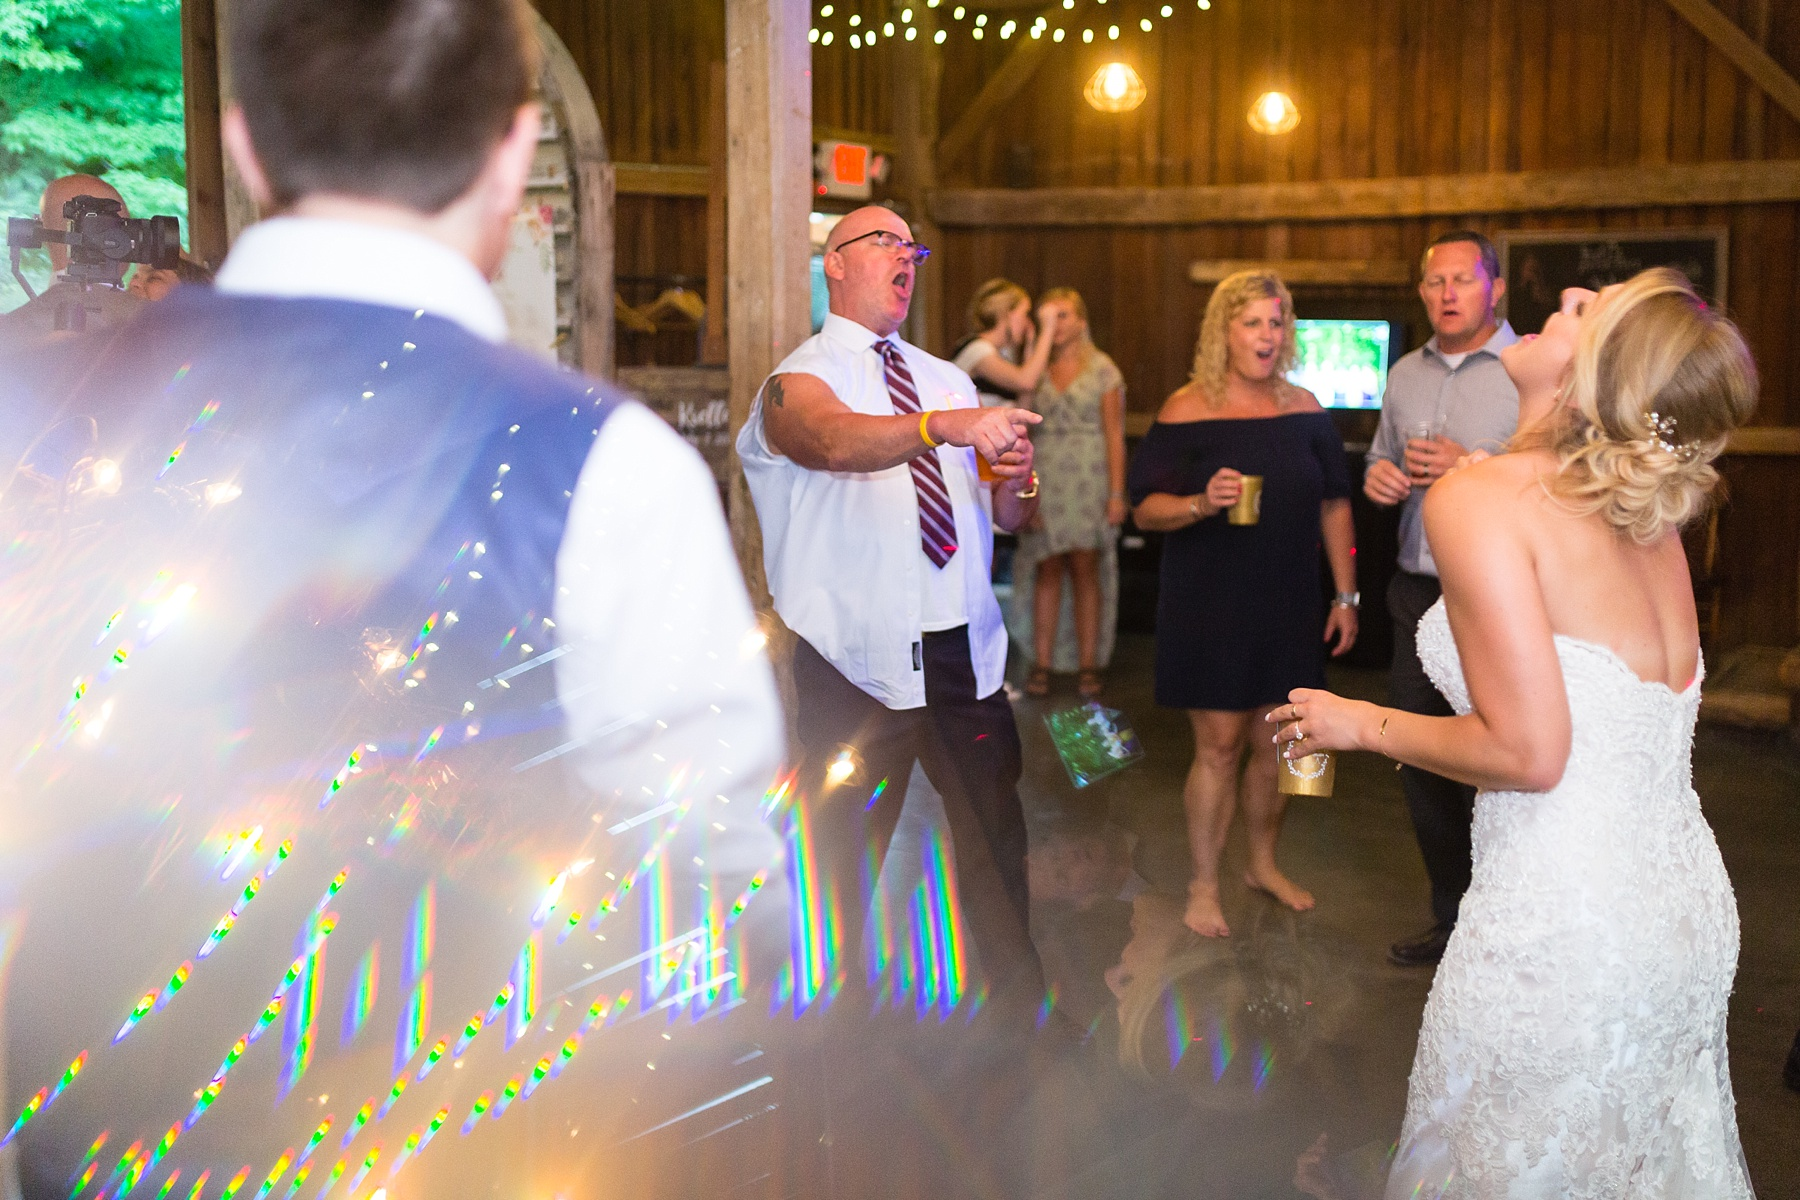 Brandon_Shafer_Photography_Millcreek_Wilde_Barn_Wedding_0053.jpg